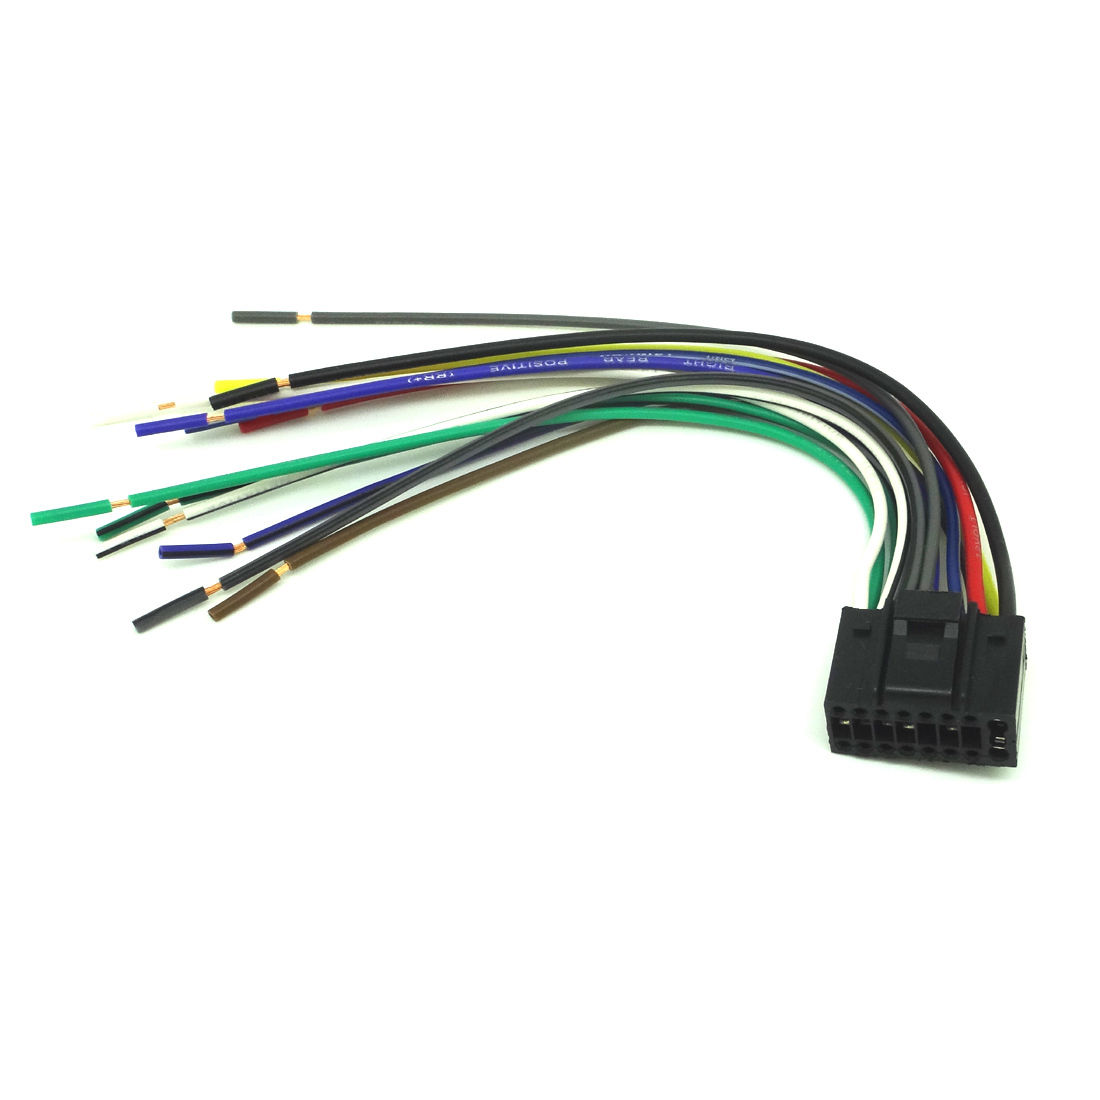 16 PIN RADIO CAR Au diO STEREO WIRE HARNESS for font b KENWOOD b font KDC dual xd7500 wiring harness wiring diagrams 12 Pin Connector at crackthecode.co